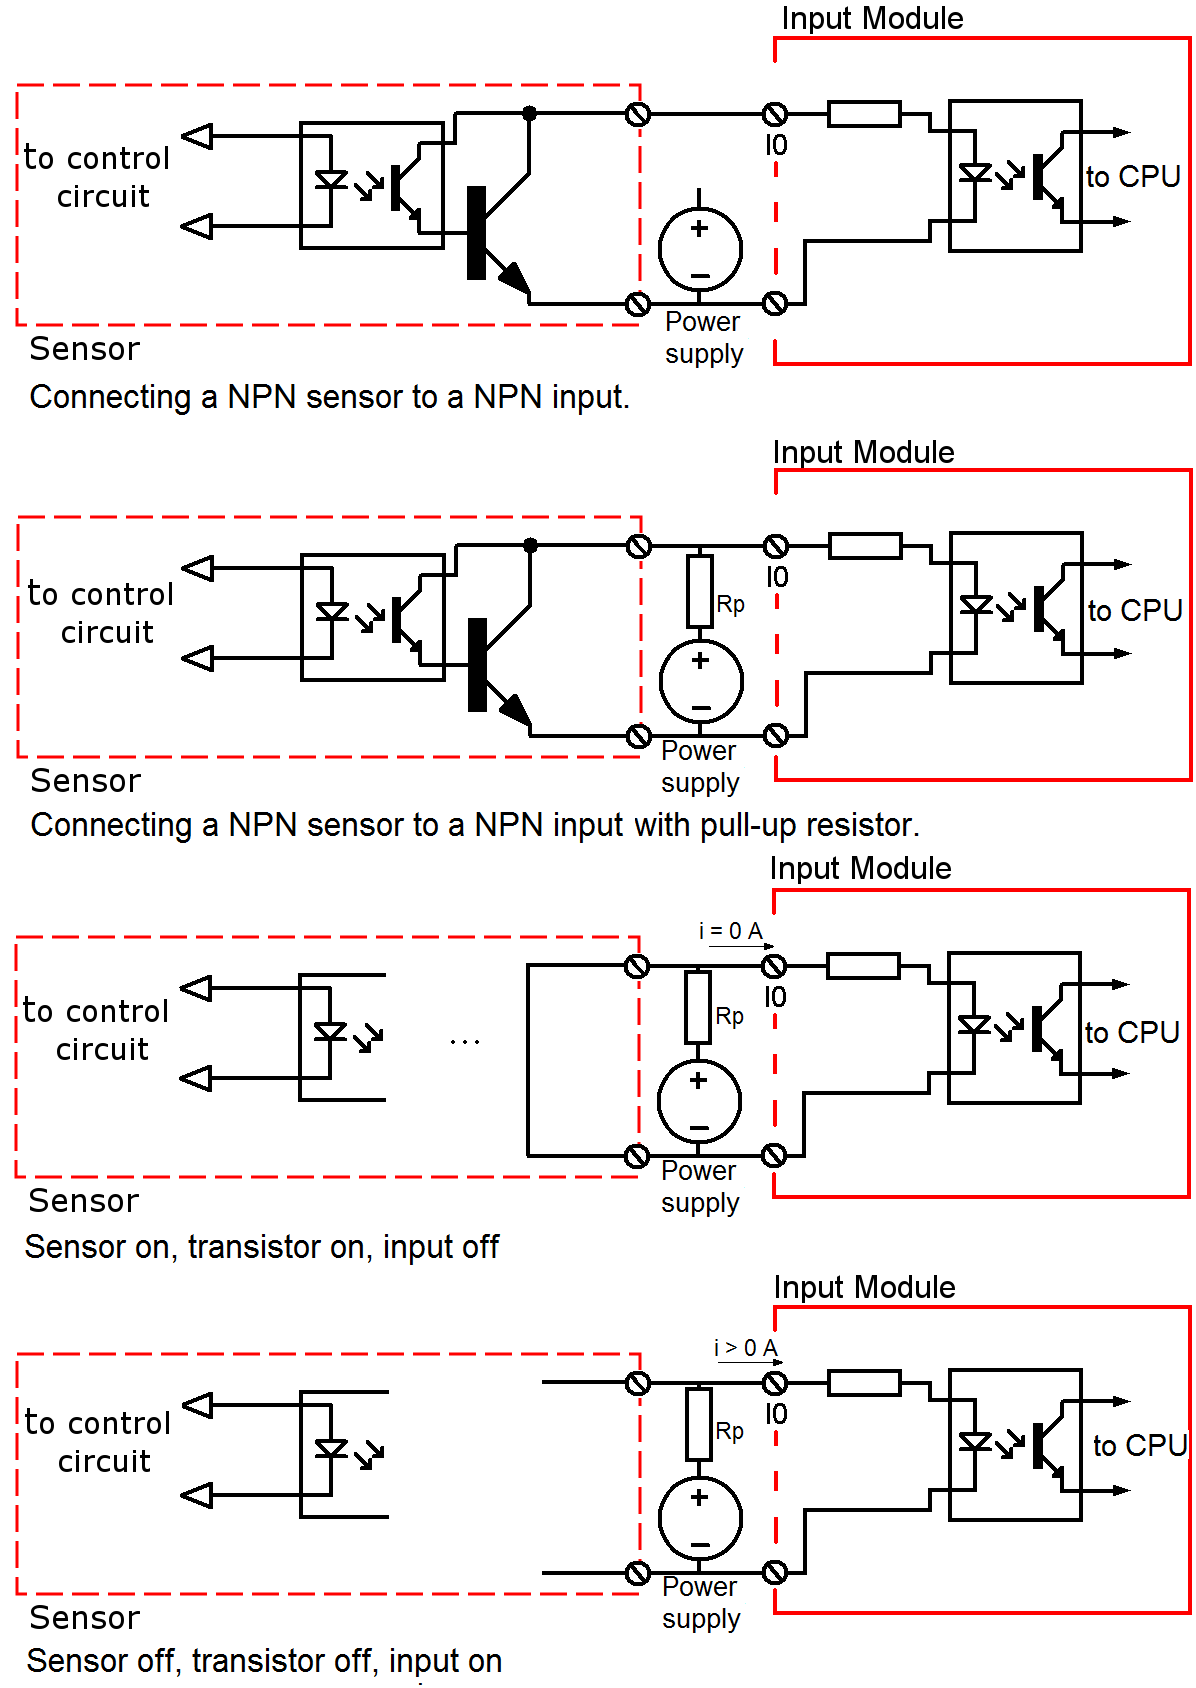 Can I connect a NPN sensor to NPN input? - Control Real English